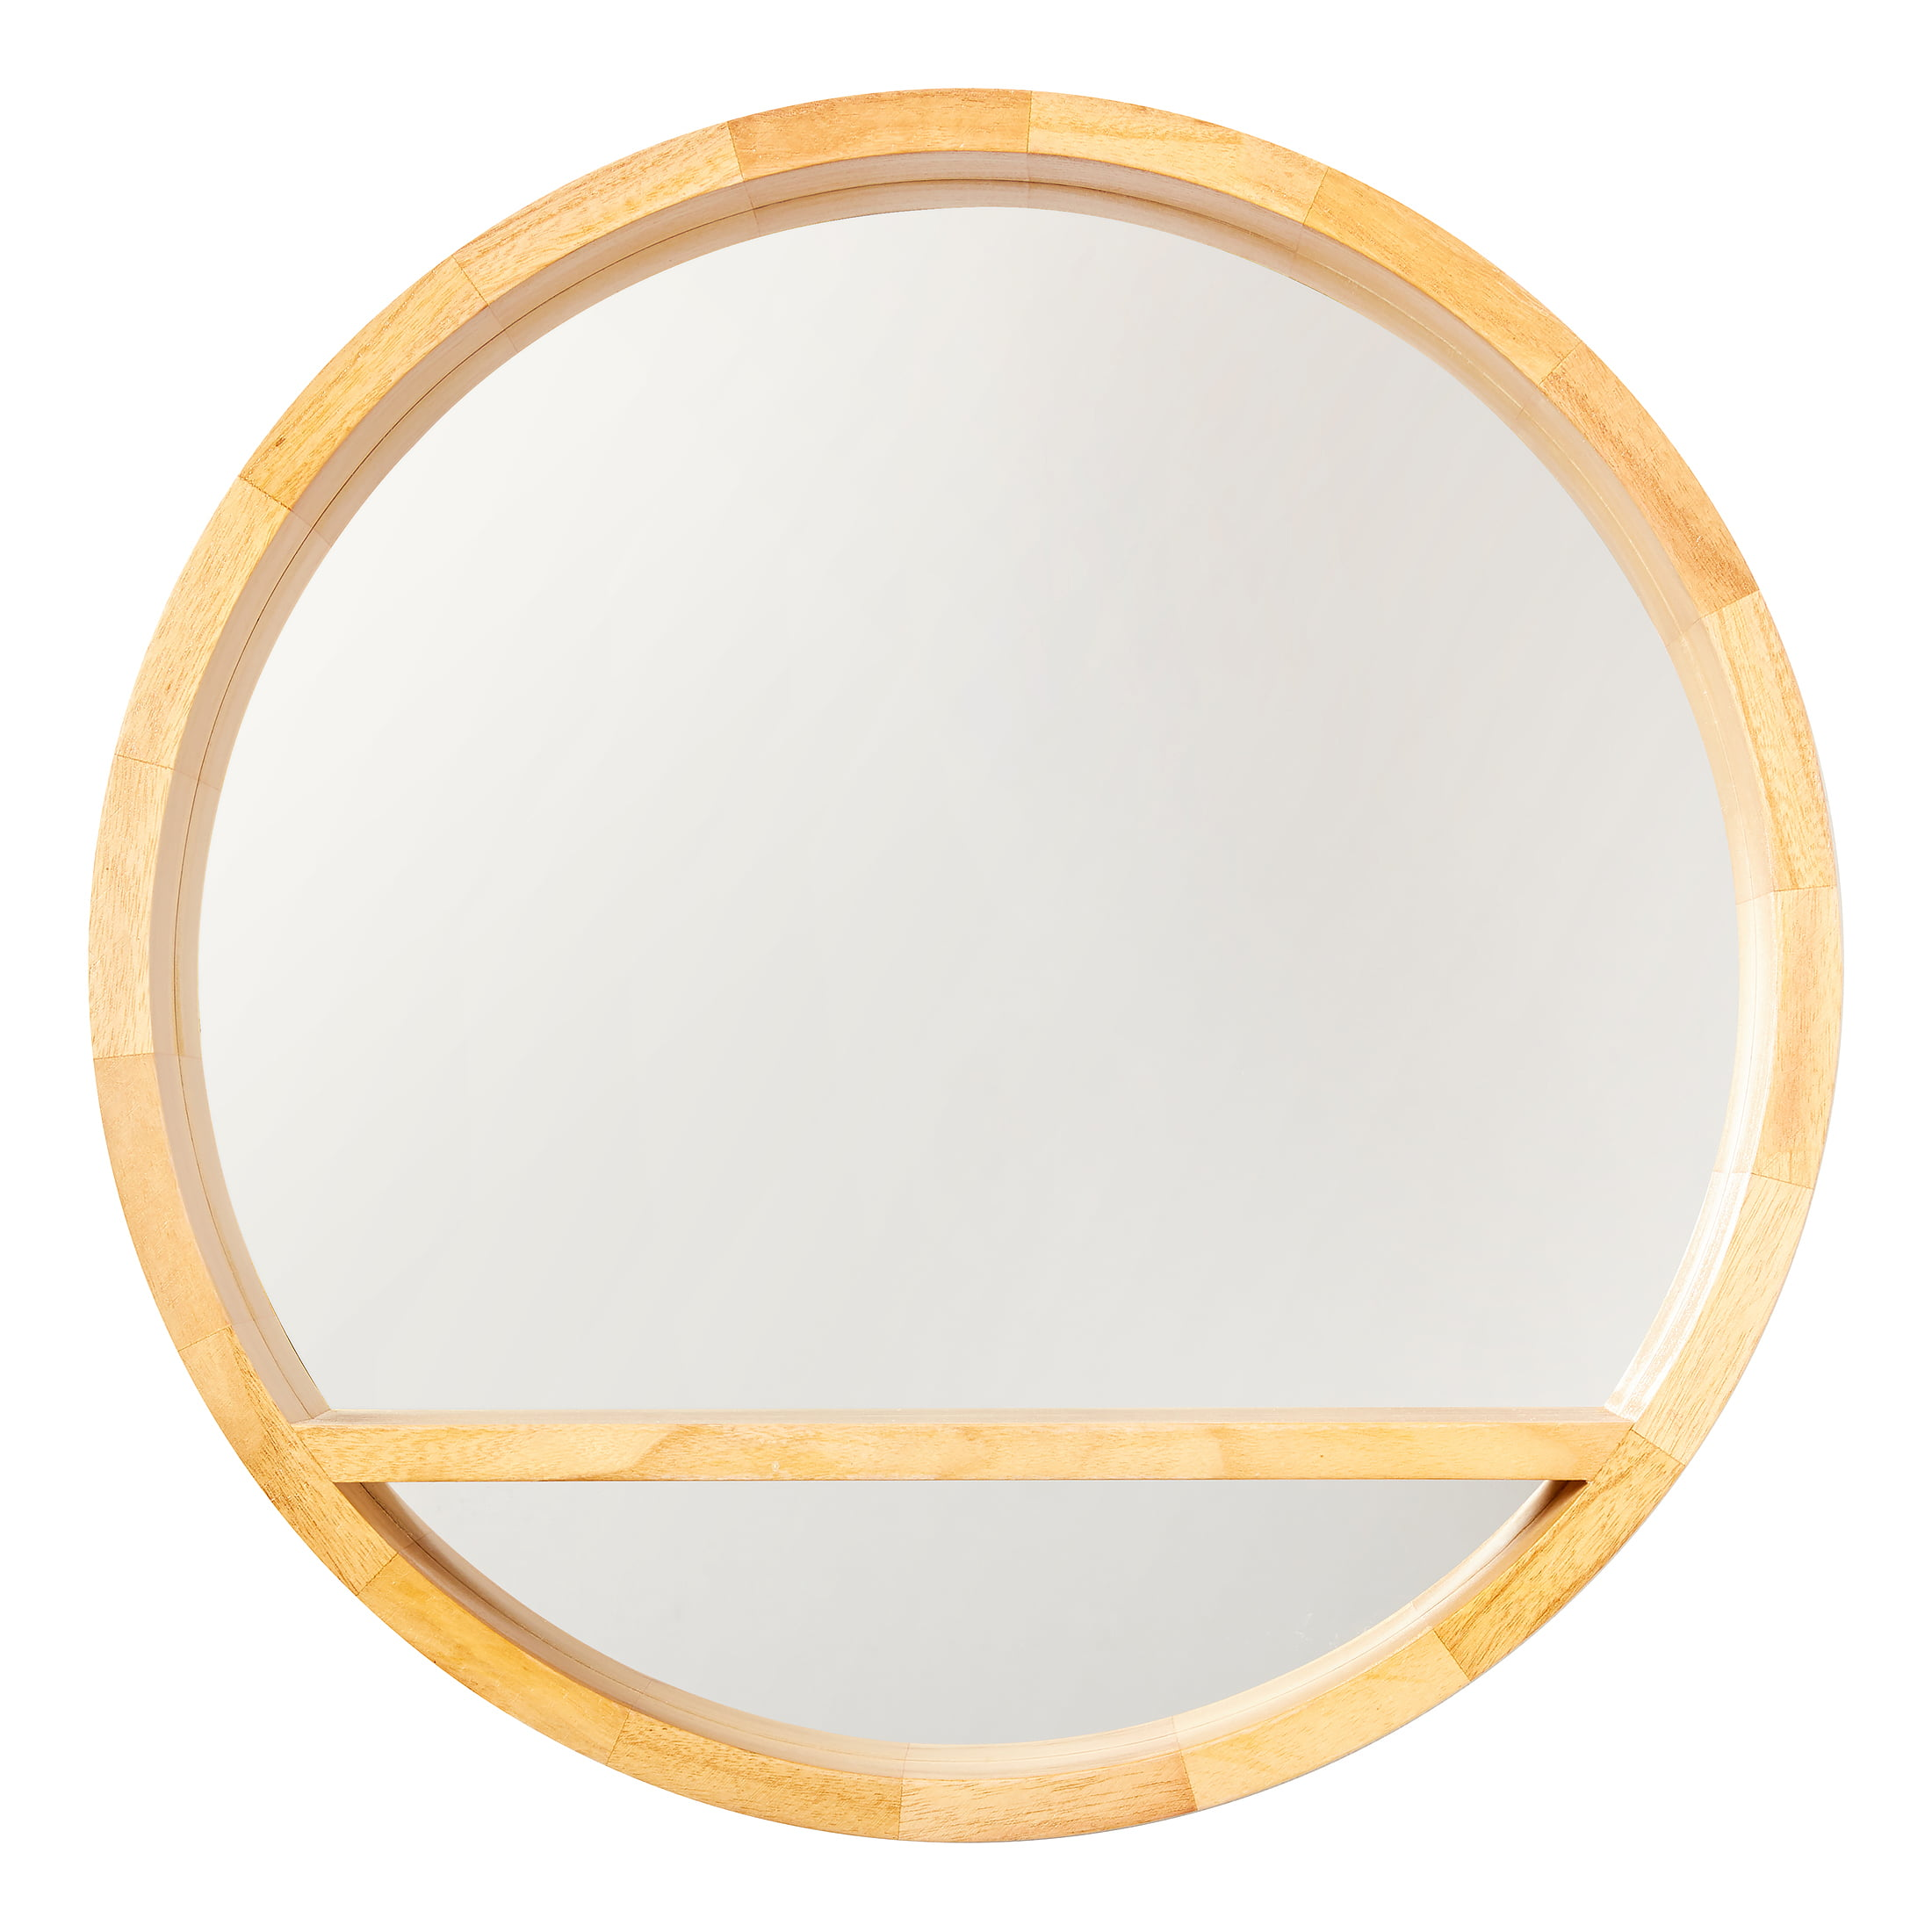 Drew Barrymore Flower Home 21 5 Diameter Round Wood Wall Mirror With Shelf Walmart Com Walmart Com